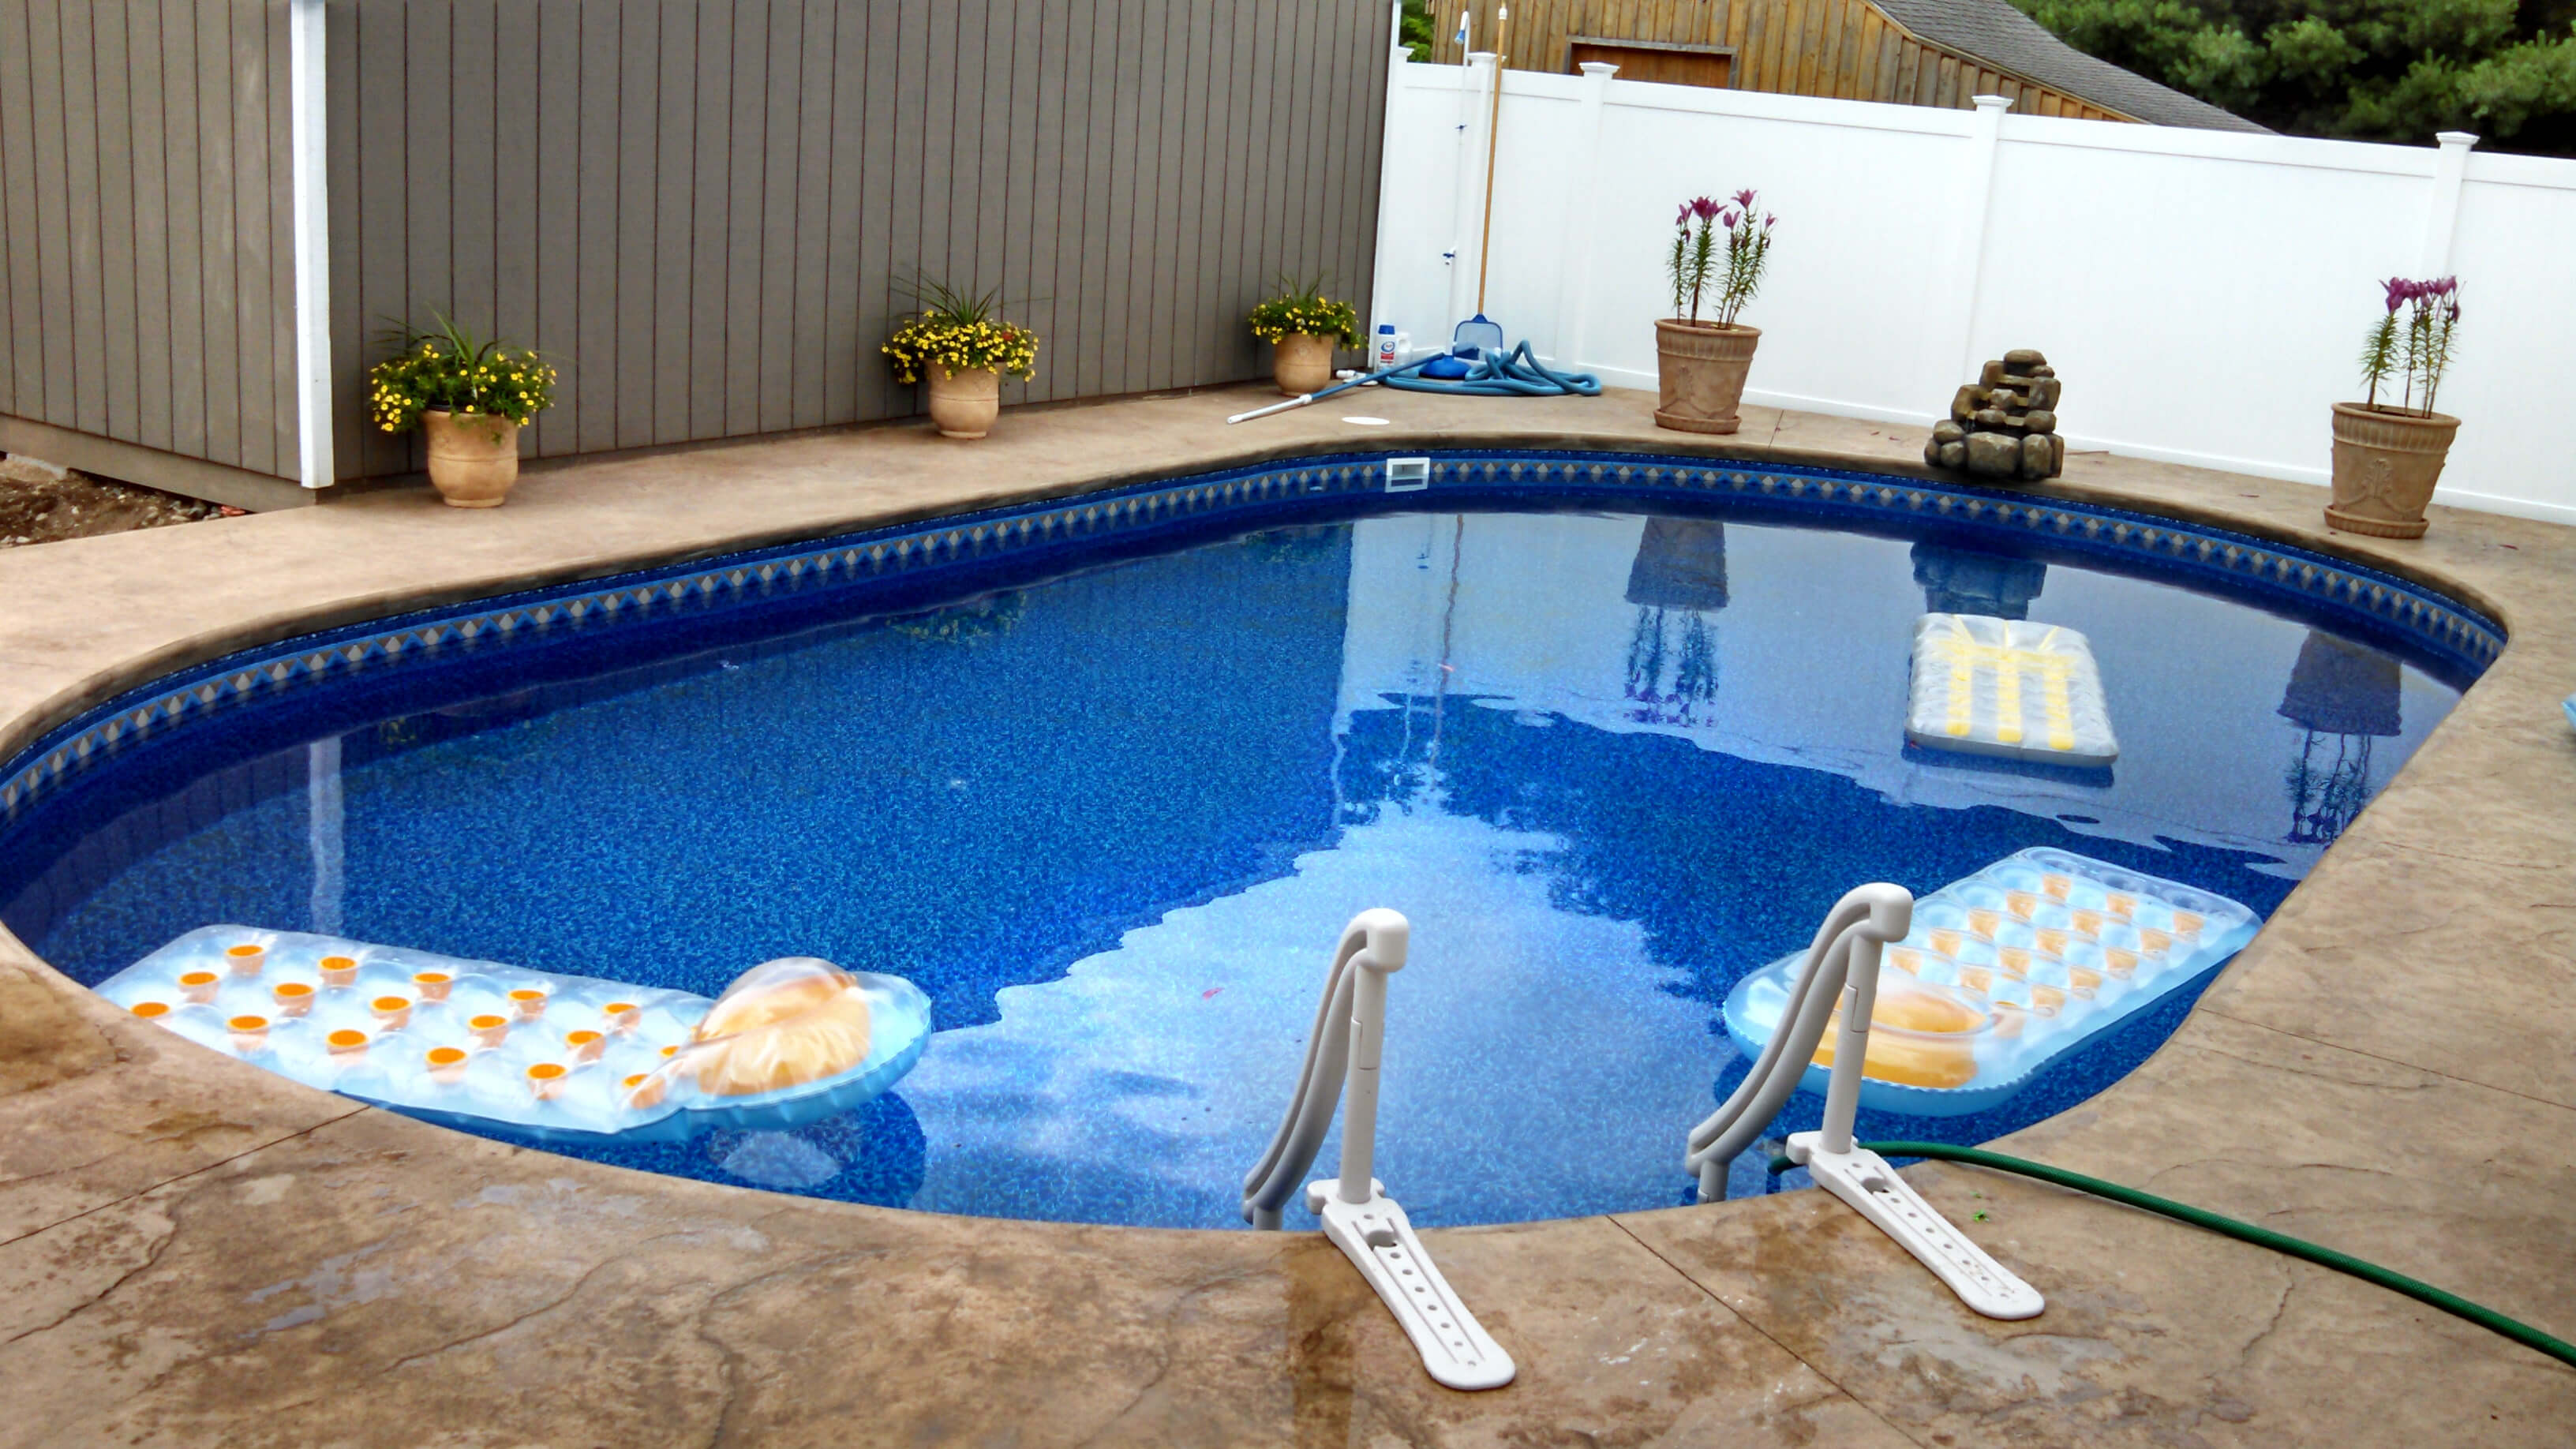 Jacuzzi Oval Pool Groton Ma Oval Inground Swimming Pool Matley Swimming